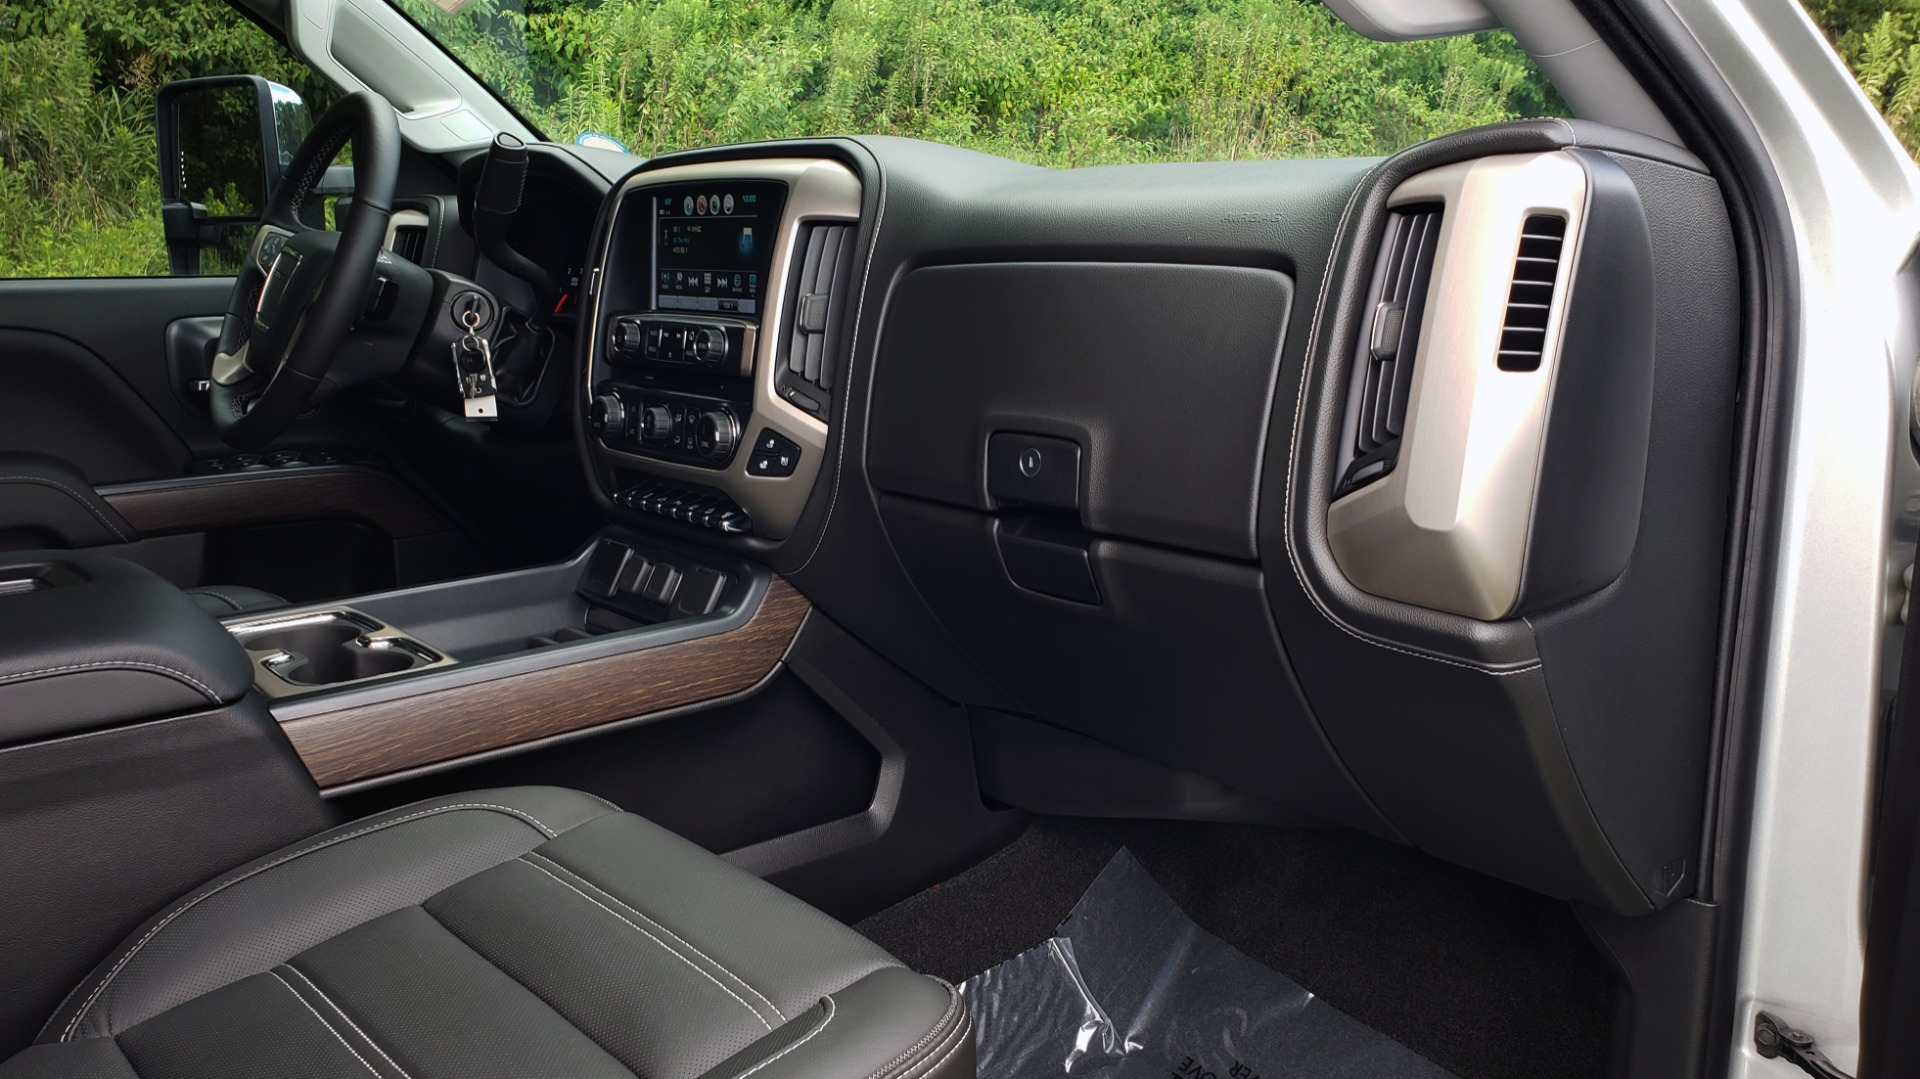 Used 2018 GMC SIERRA 2500HD DENALI 4WD / 6.6L DURAMAX / NAV / SUNROOF / BOSE / REARVIEW for sale Sold at Formula Imports in Charlotte NC 28227 79